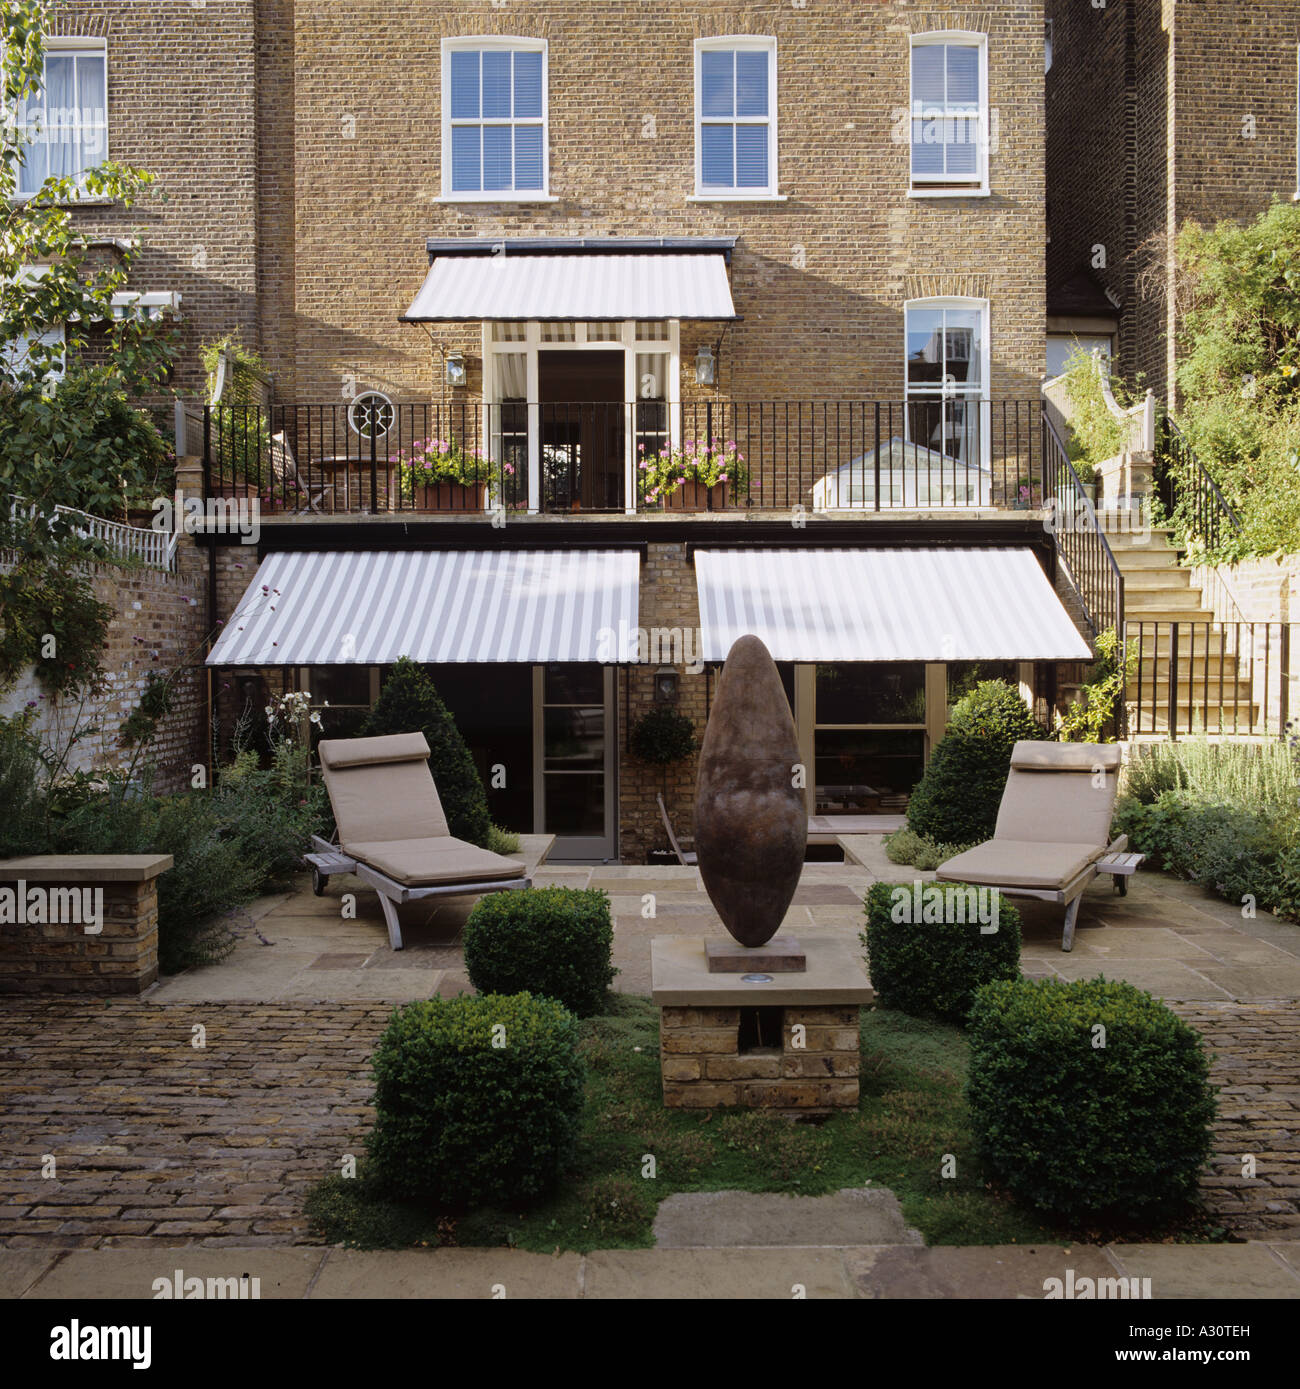 a modern garden of a London townhouse with awnings and sun loungers - Stock Image